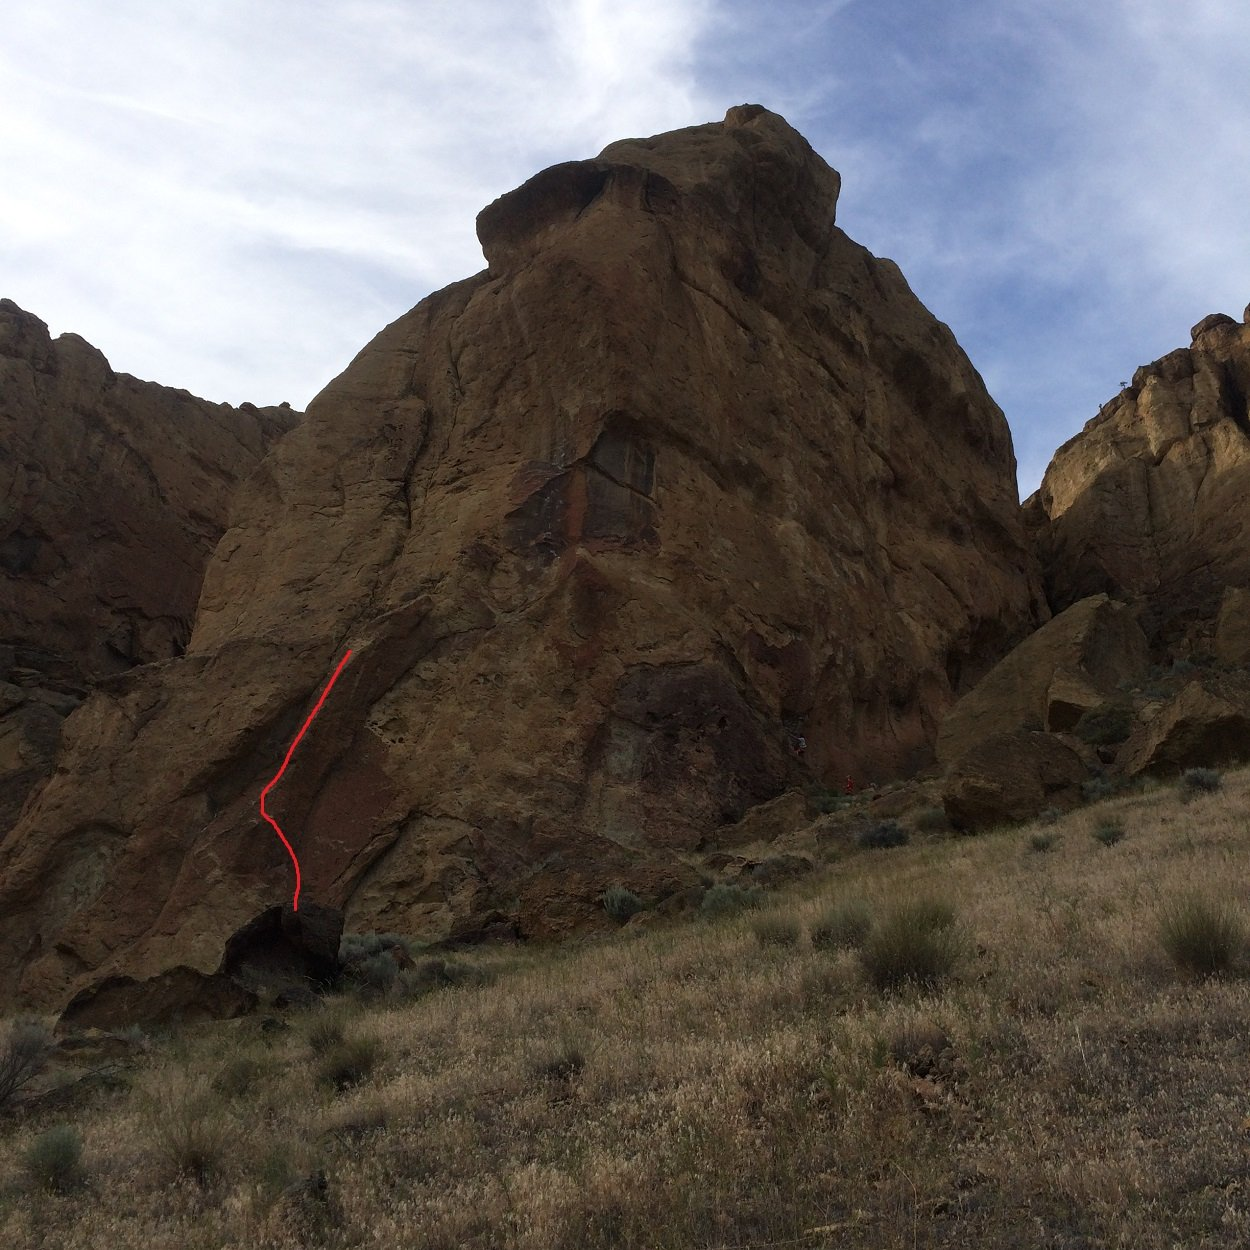 Time To Shower - Smith Rock Climbing